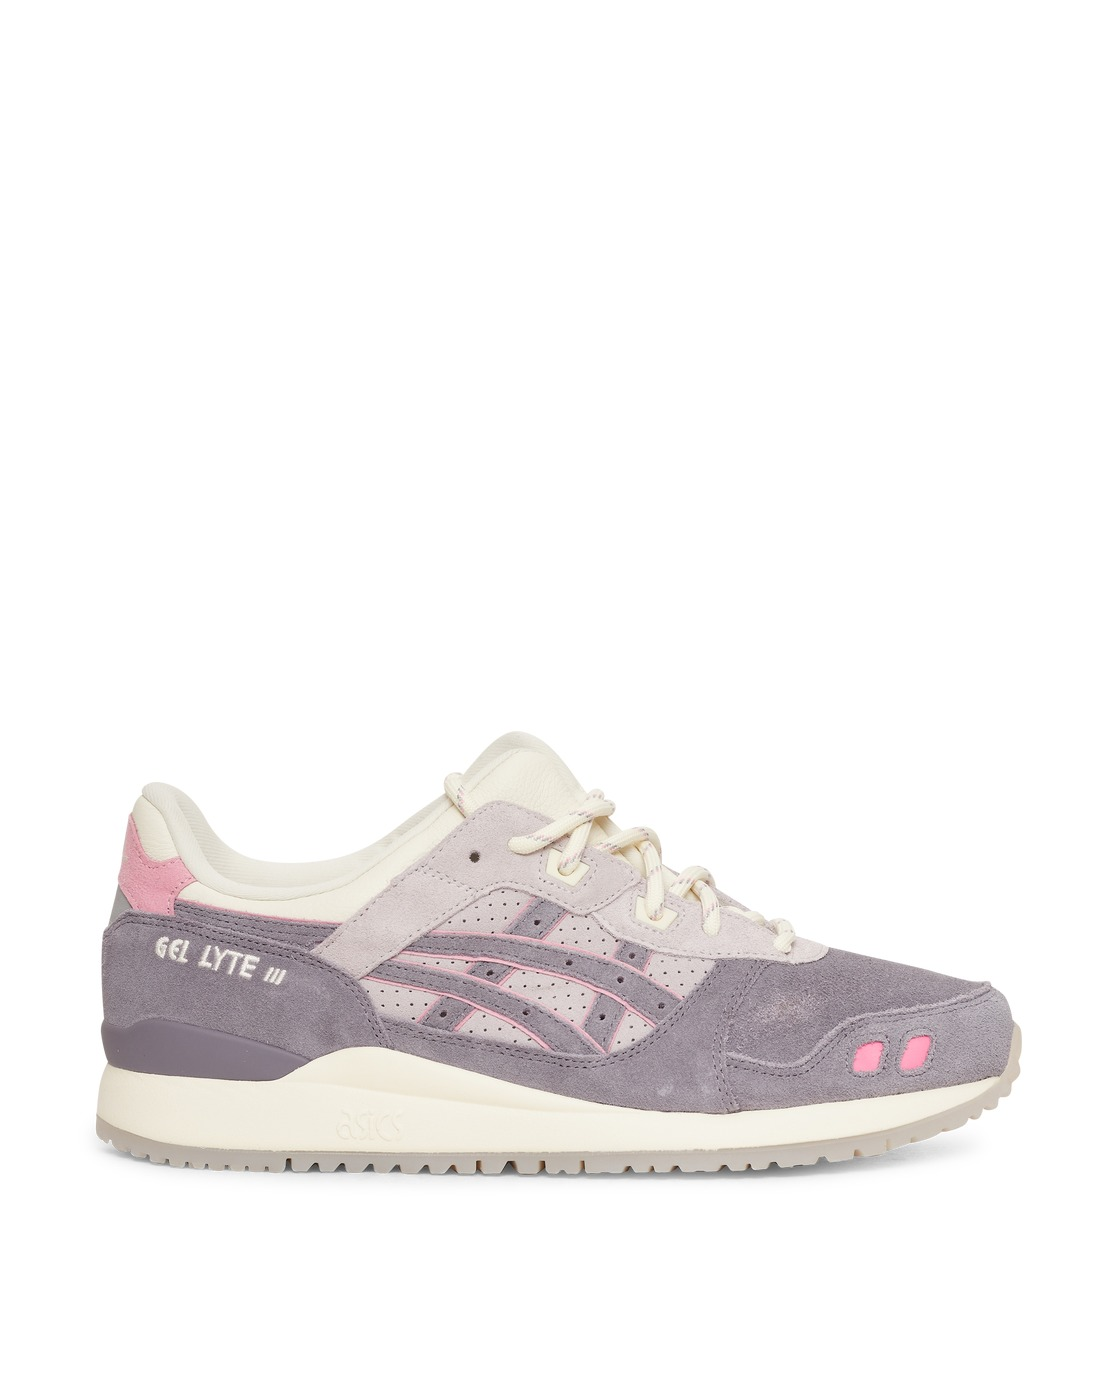 Photo: Asics End Gel Lyte Iii Og Sneakers Lavender Grey/Ivory